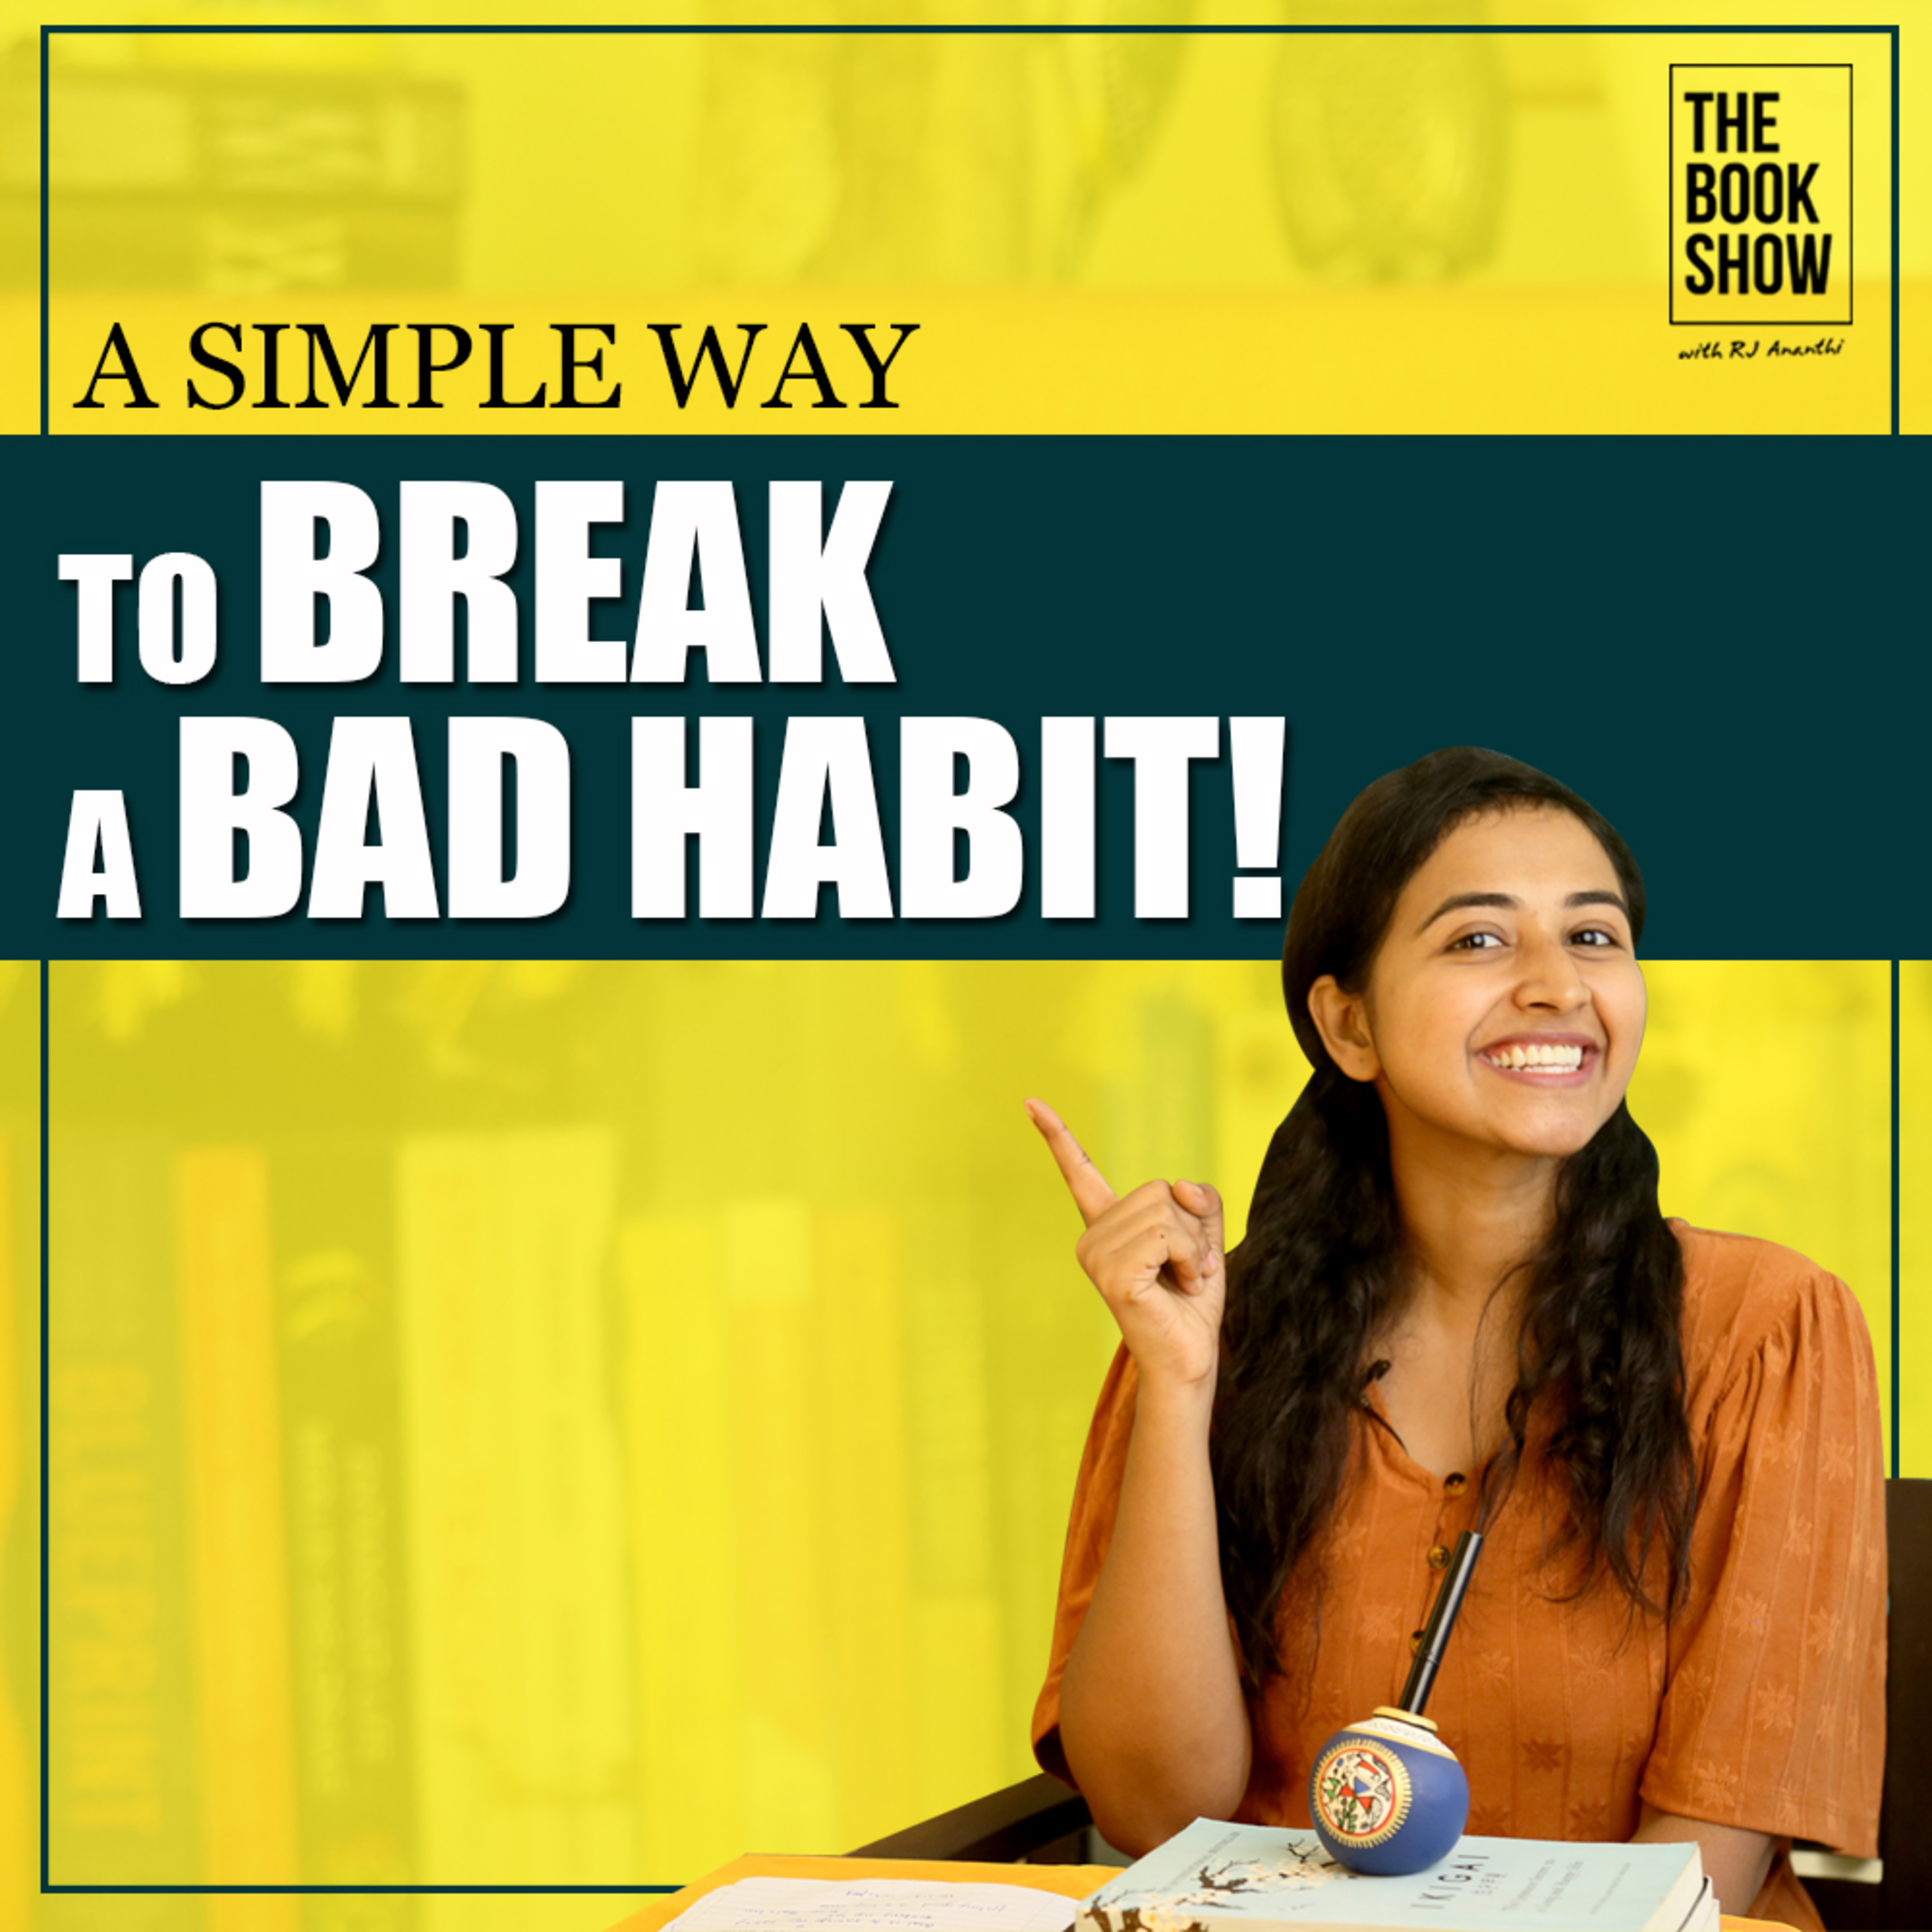 A Simple Way To Break A Bad Habit   Bookmark ft. RJ Ananthi   The Book Show